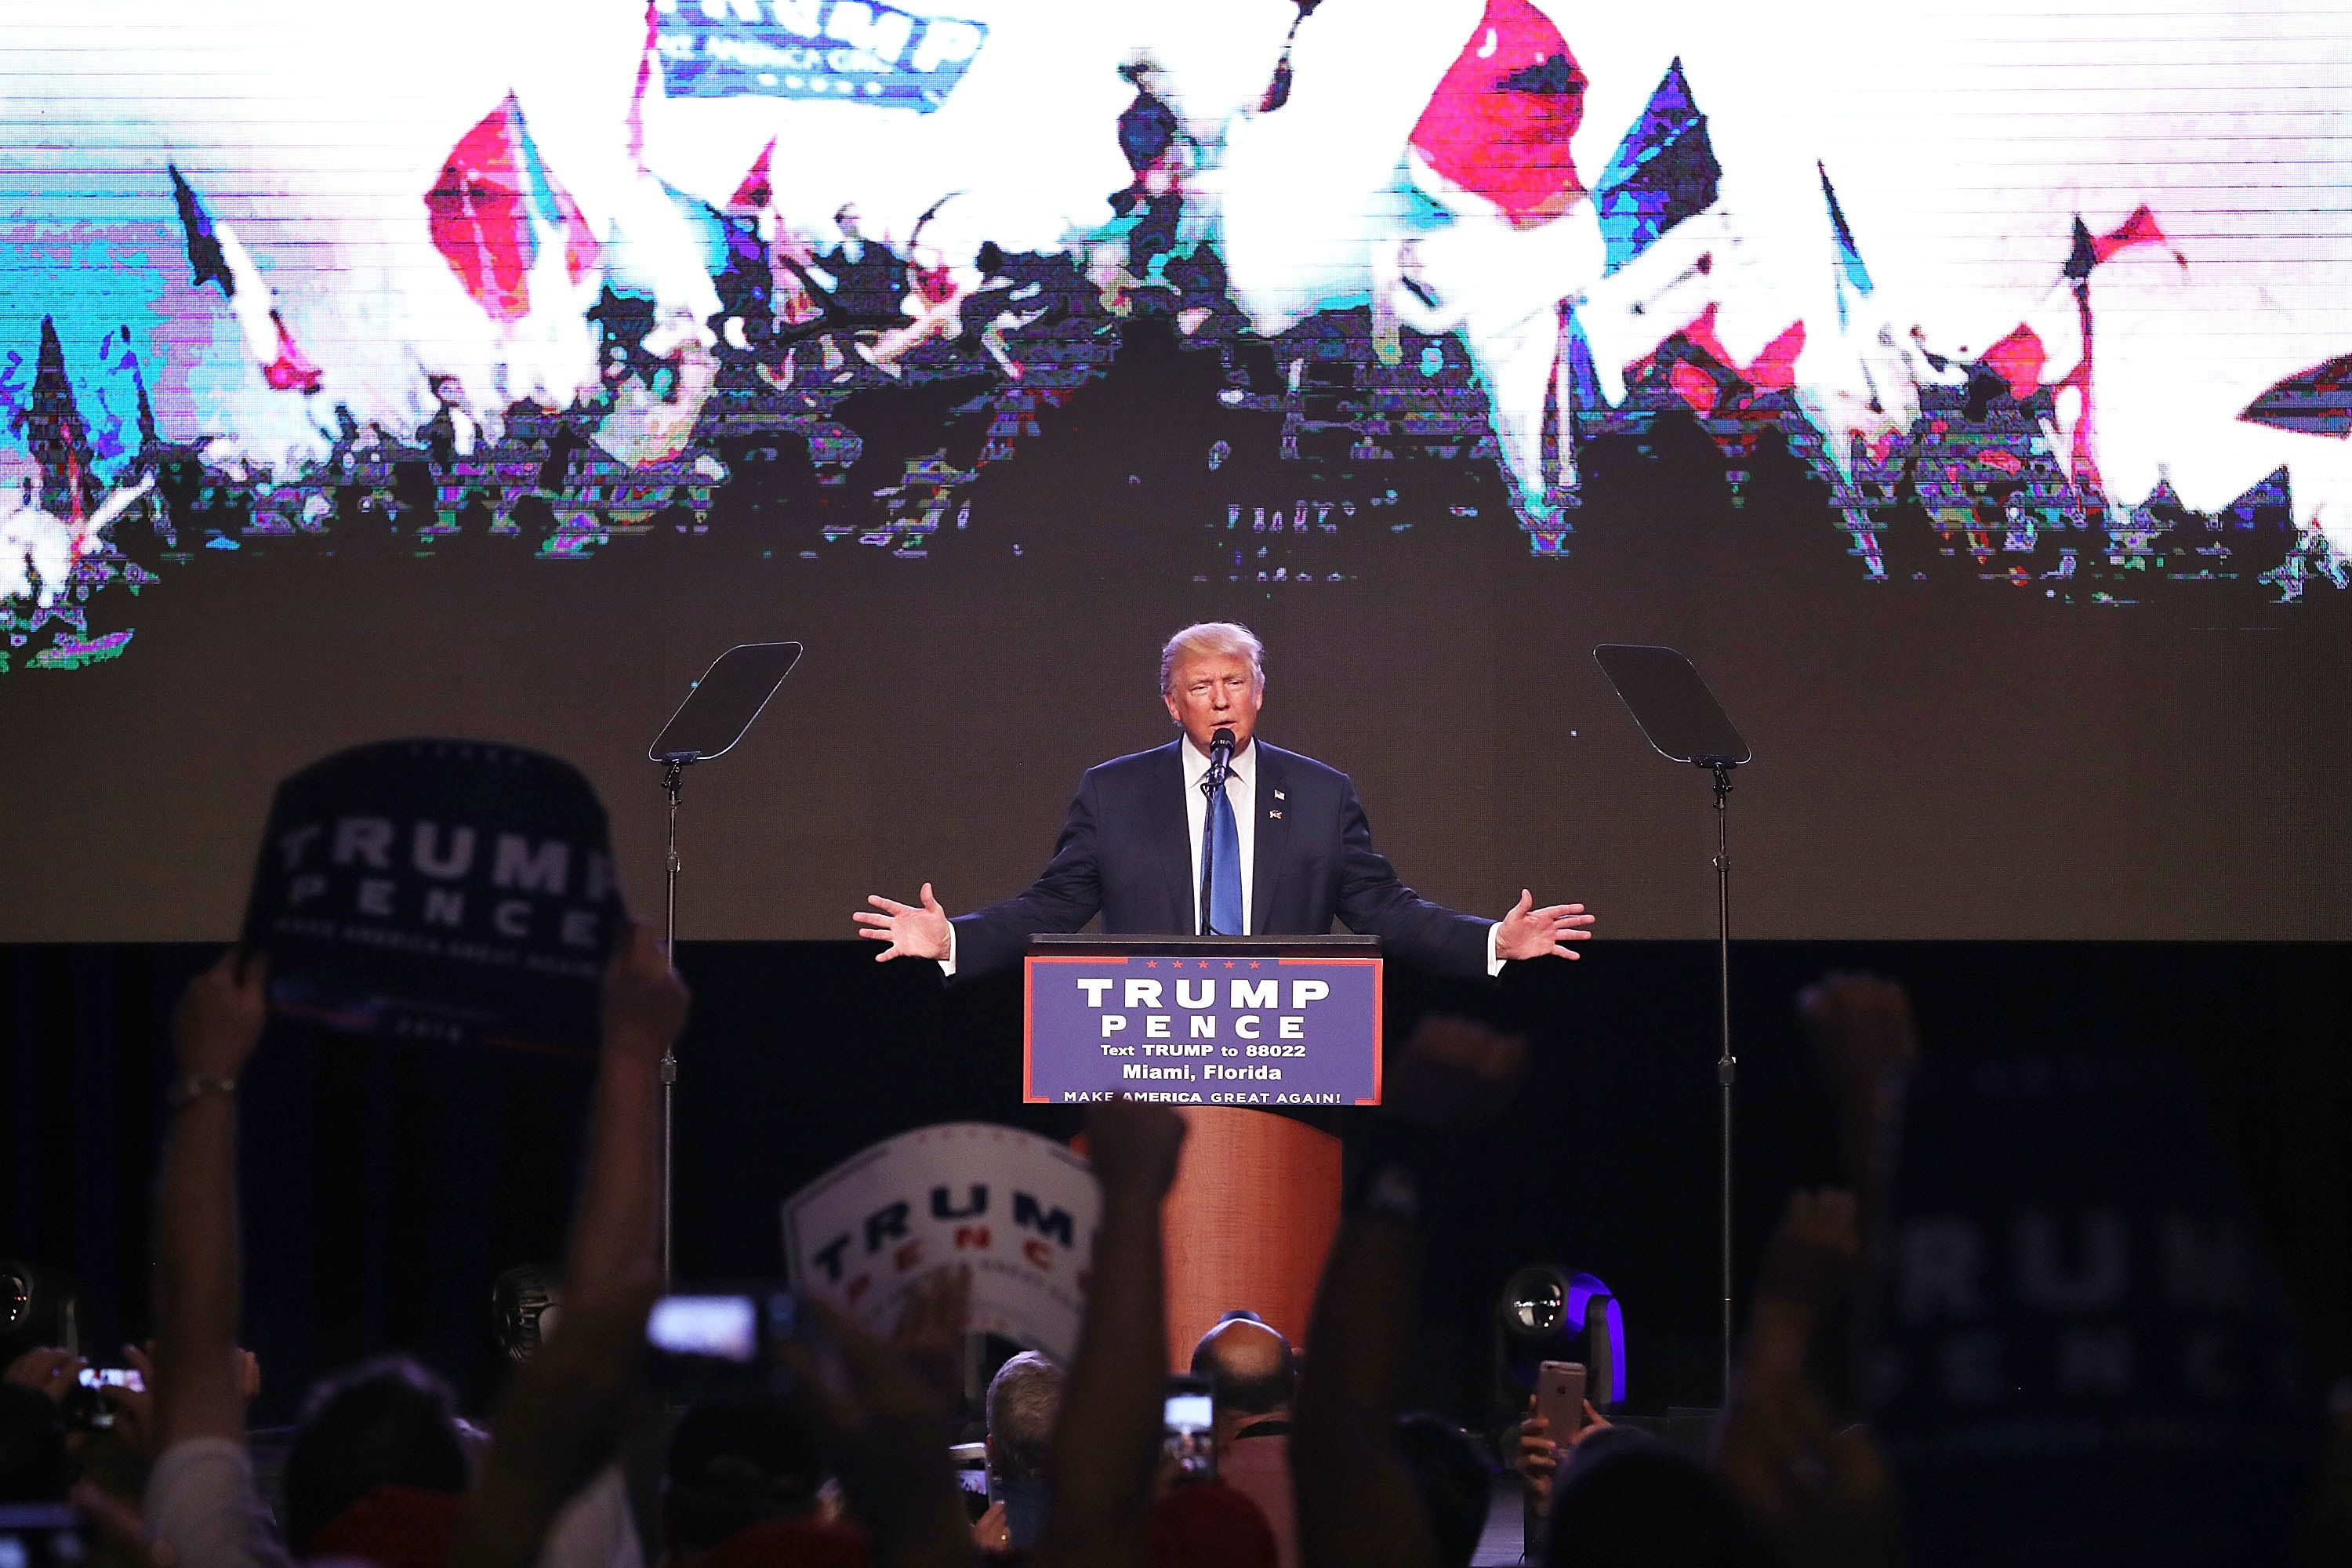 Donald Trump spoke at a rally in Miami on Friday.